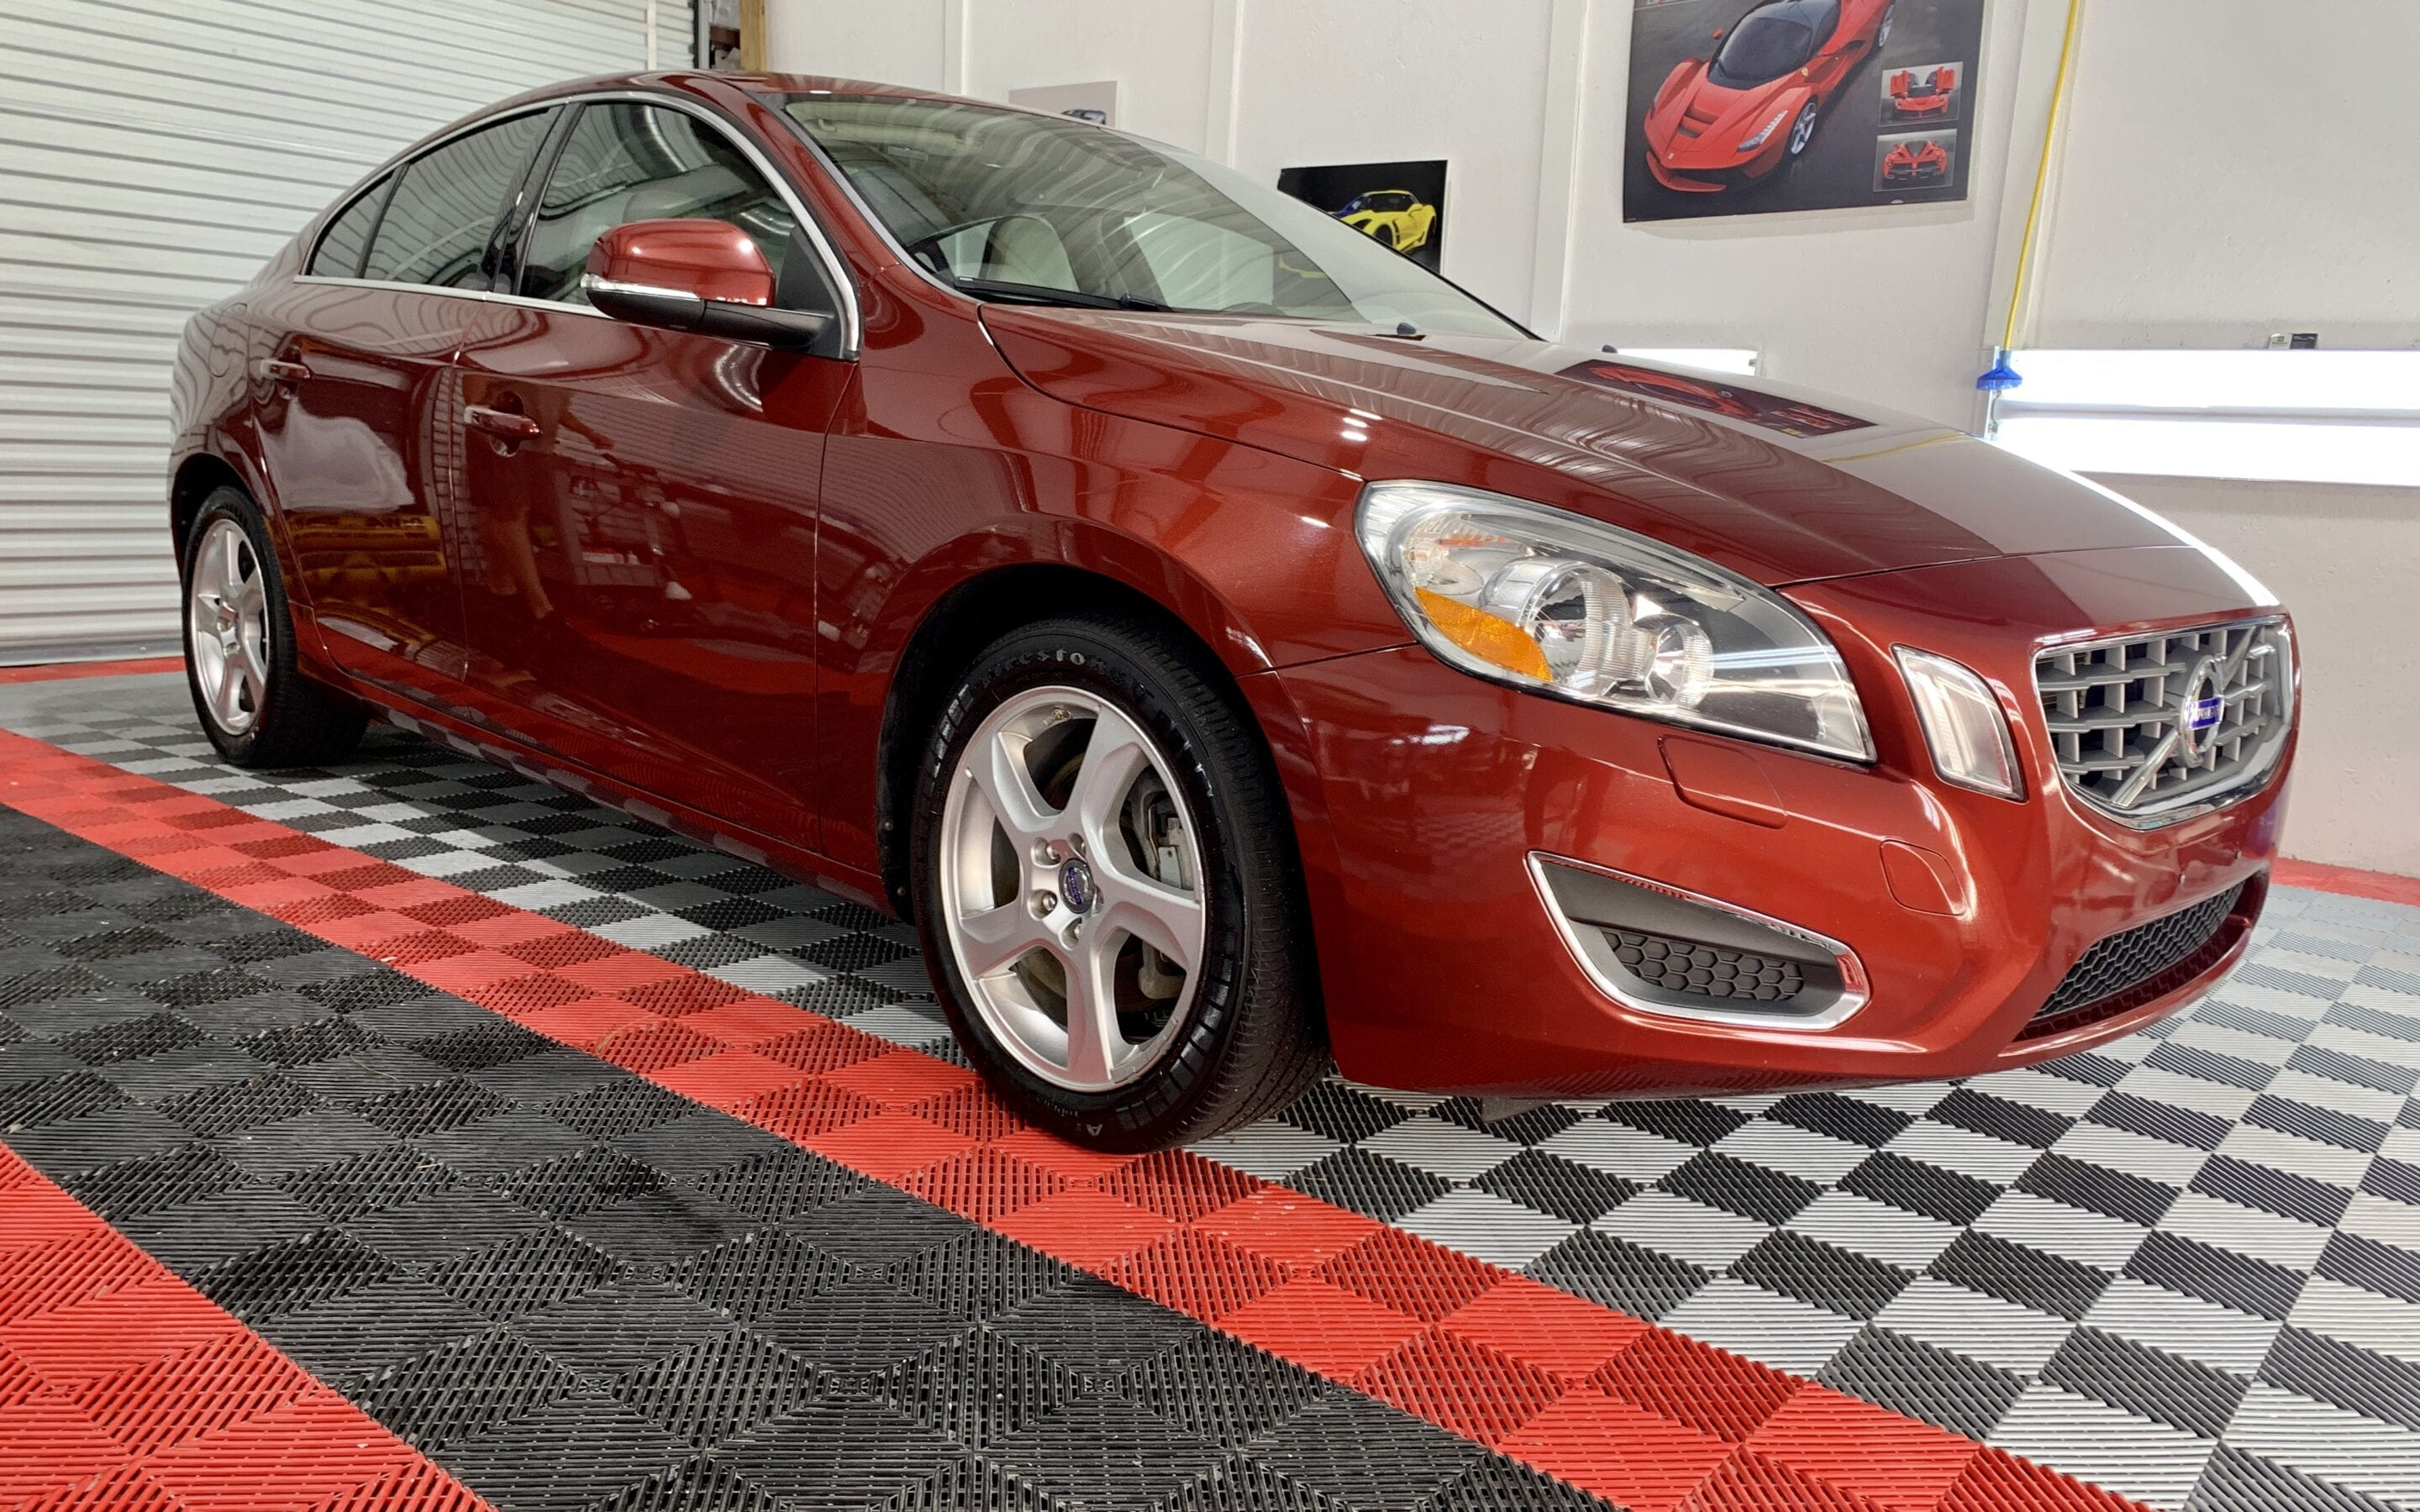 Full Detail of a 2018 Volvo S60